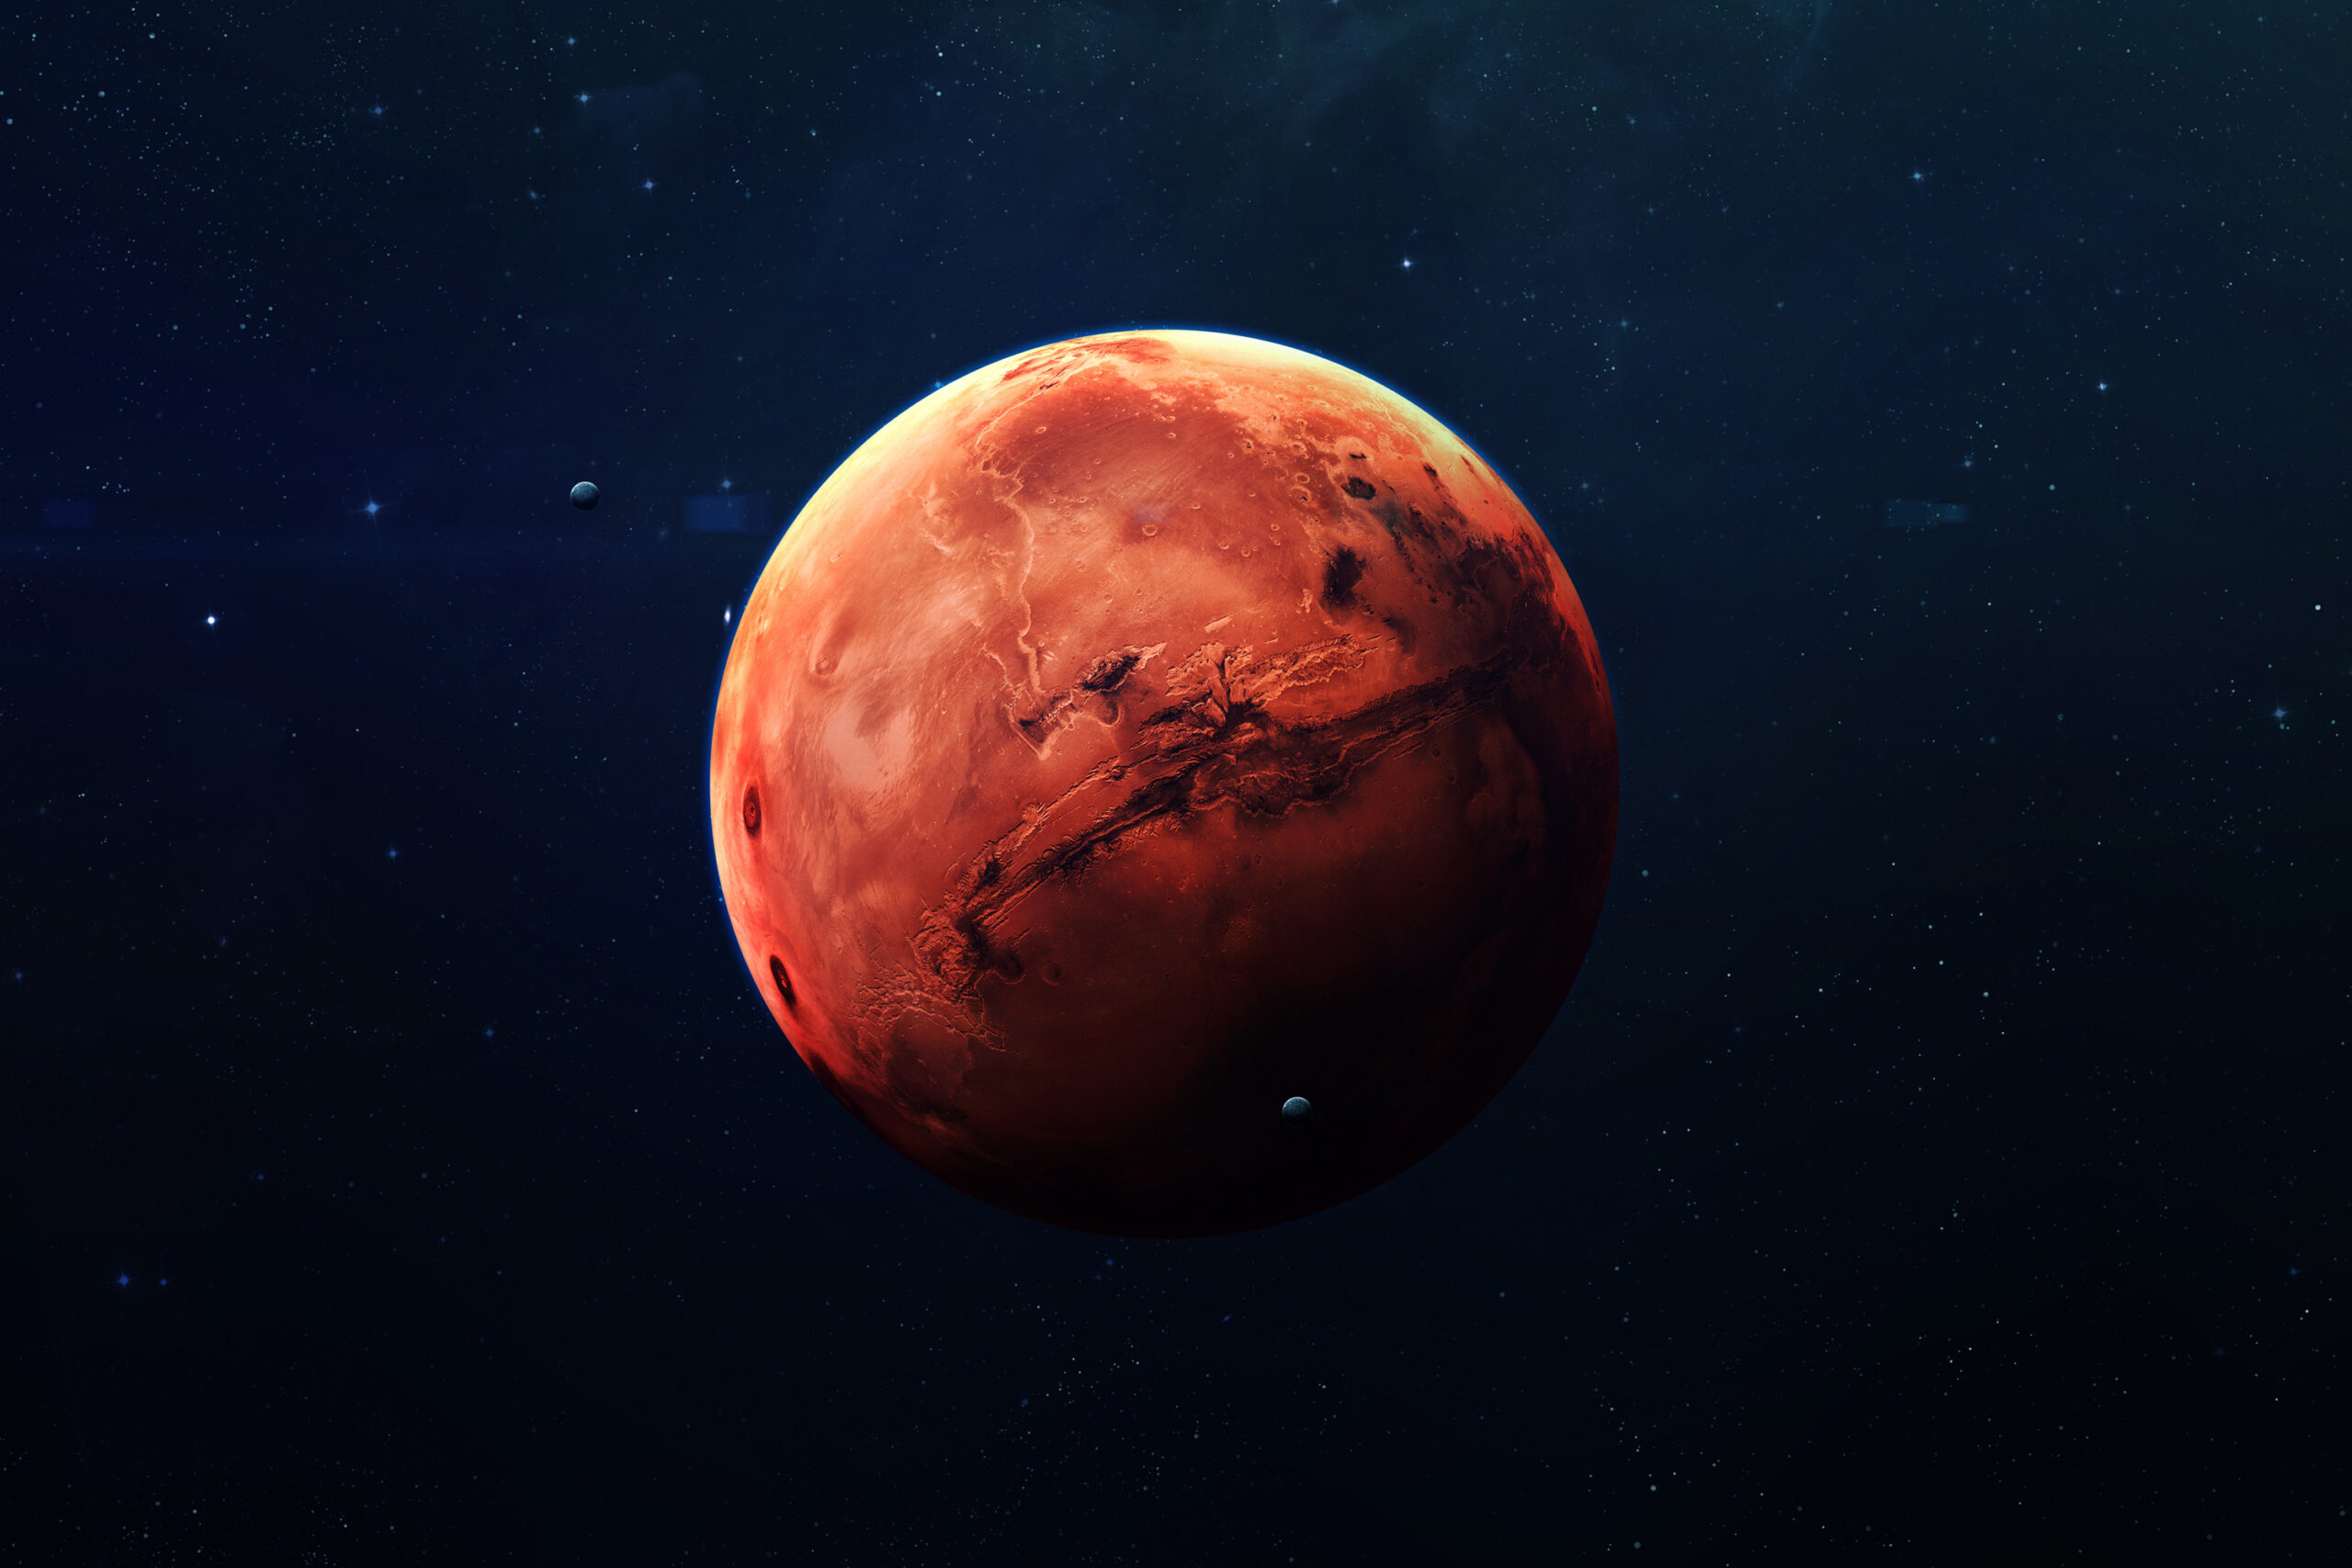 Most of the water on Mars might be present hidden under the surface